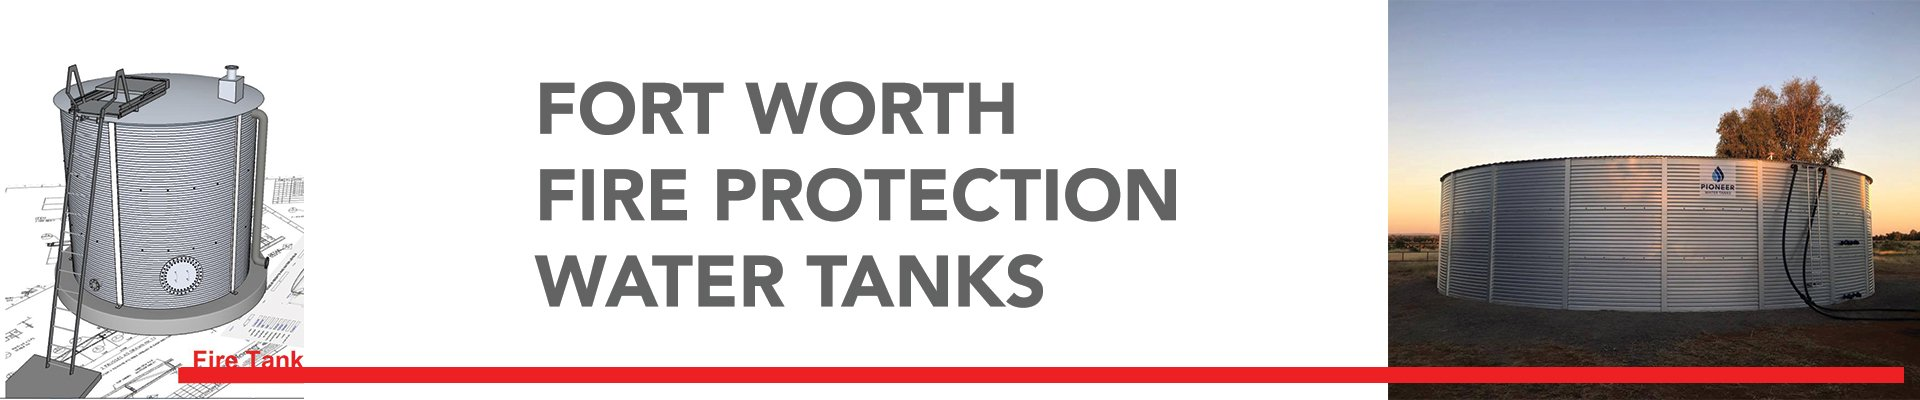 Fort Worth Fire Protection Water Tanks